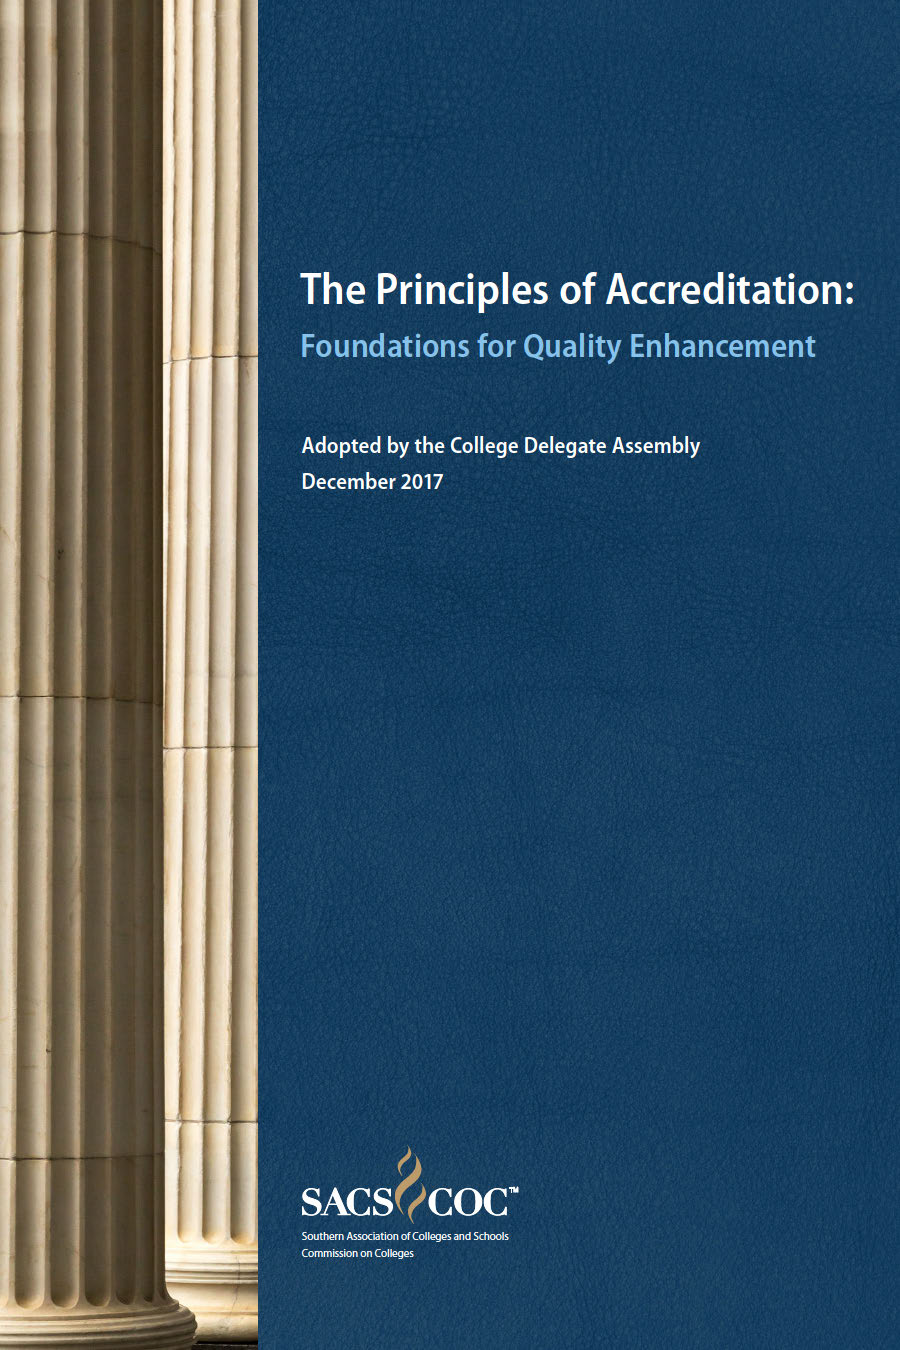 The Principles of Accreditation textbook